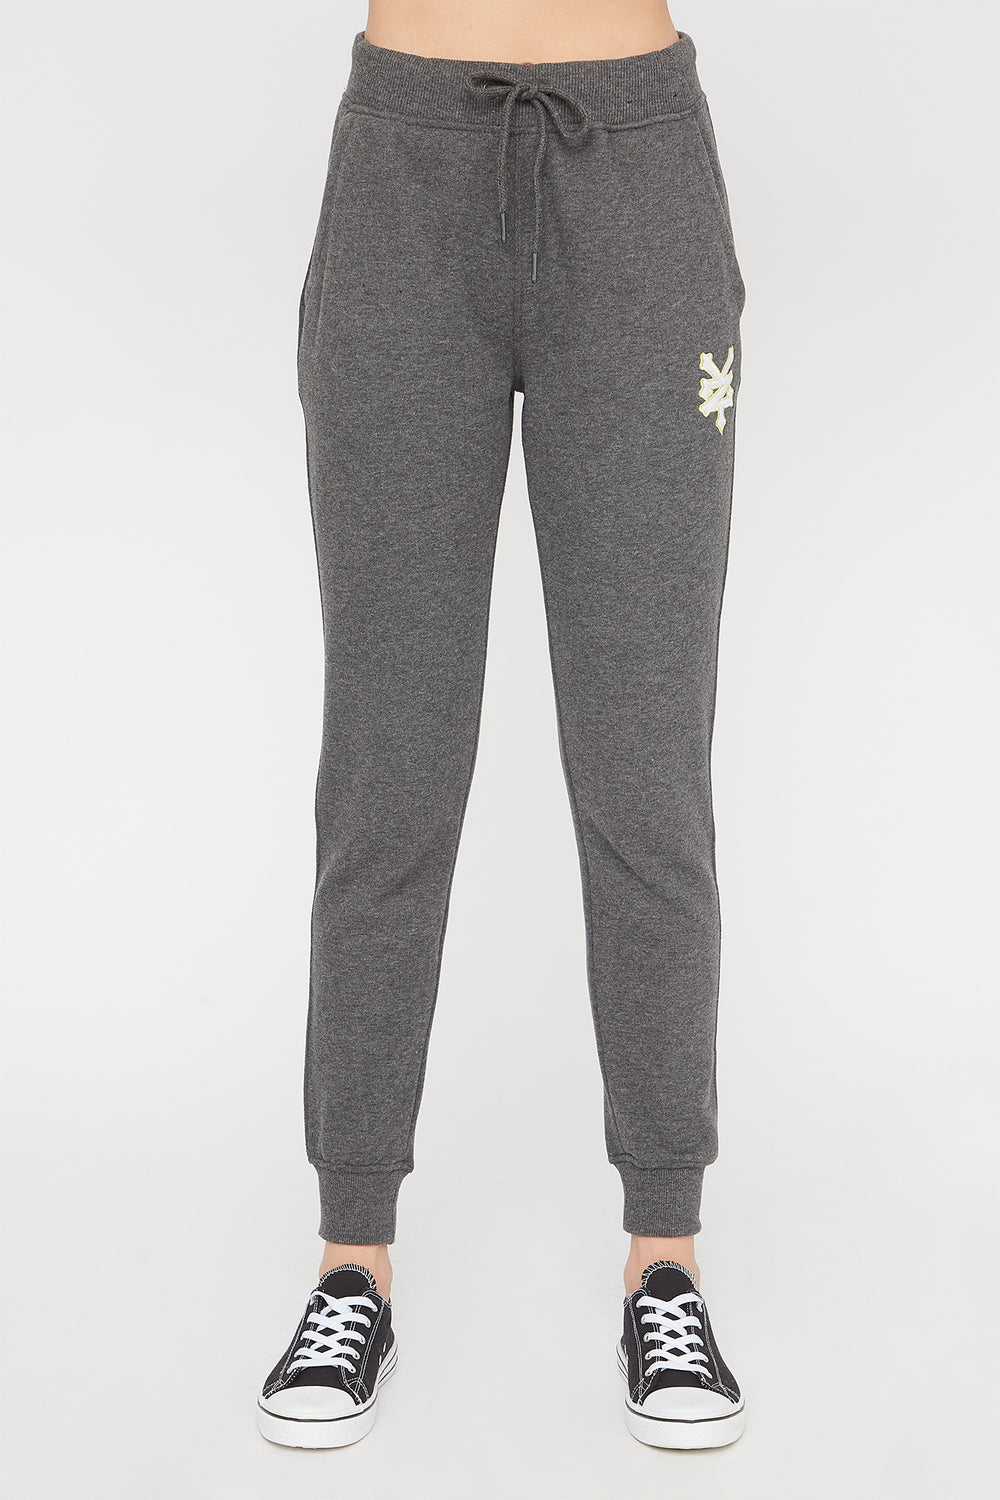 Zoo York Womens Embroidered Pastel Logo Jogger Charcoal